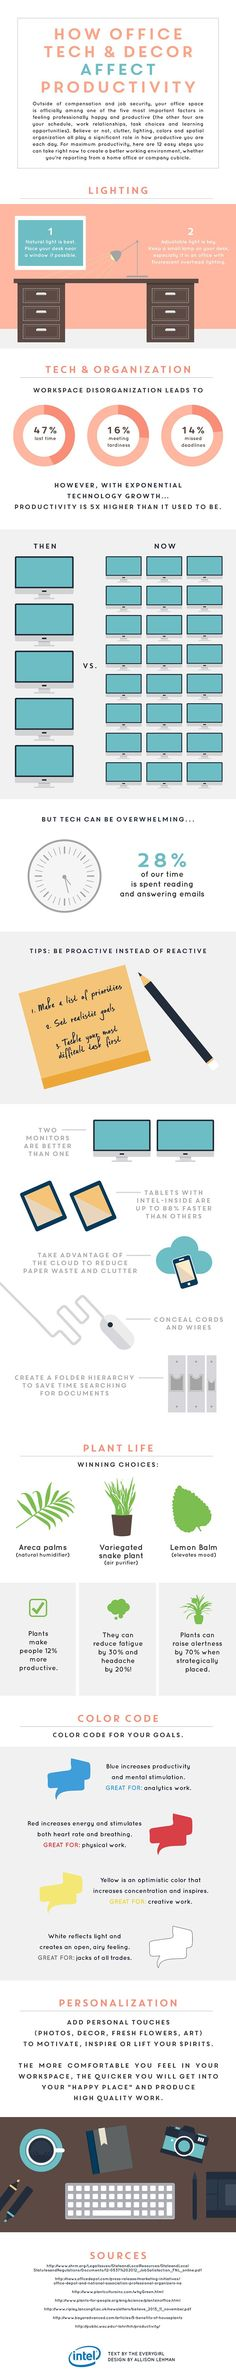 How Office Tech and Decor Affect Productivity #infographic #Office #Decor #Productivity